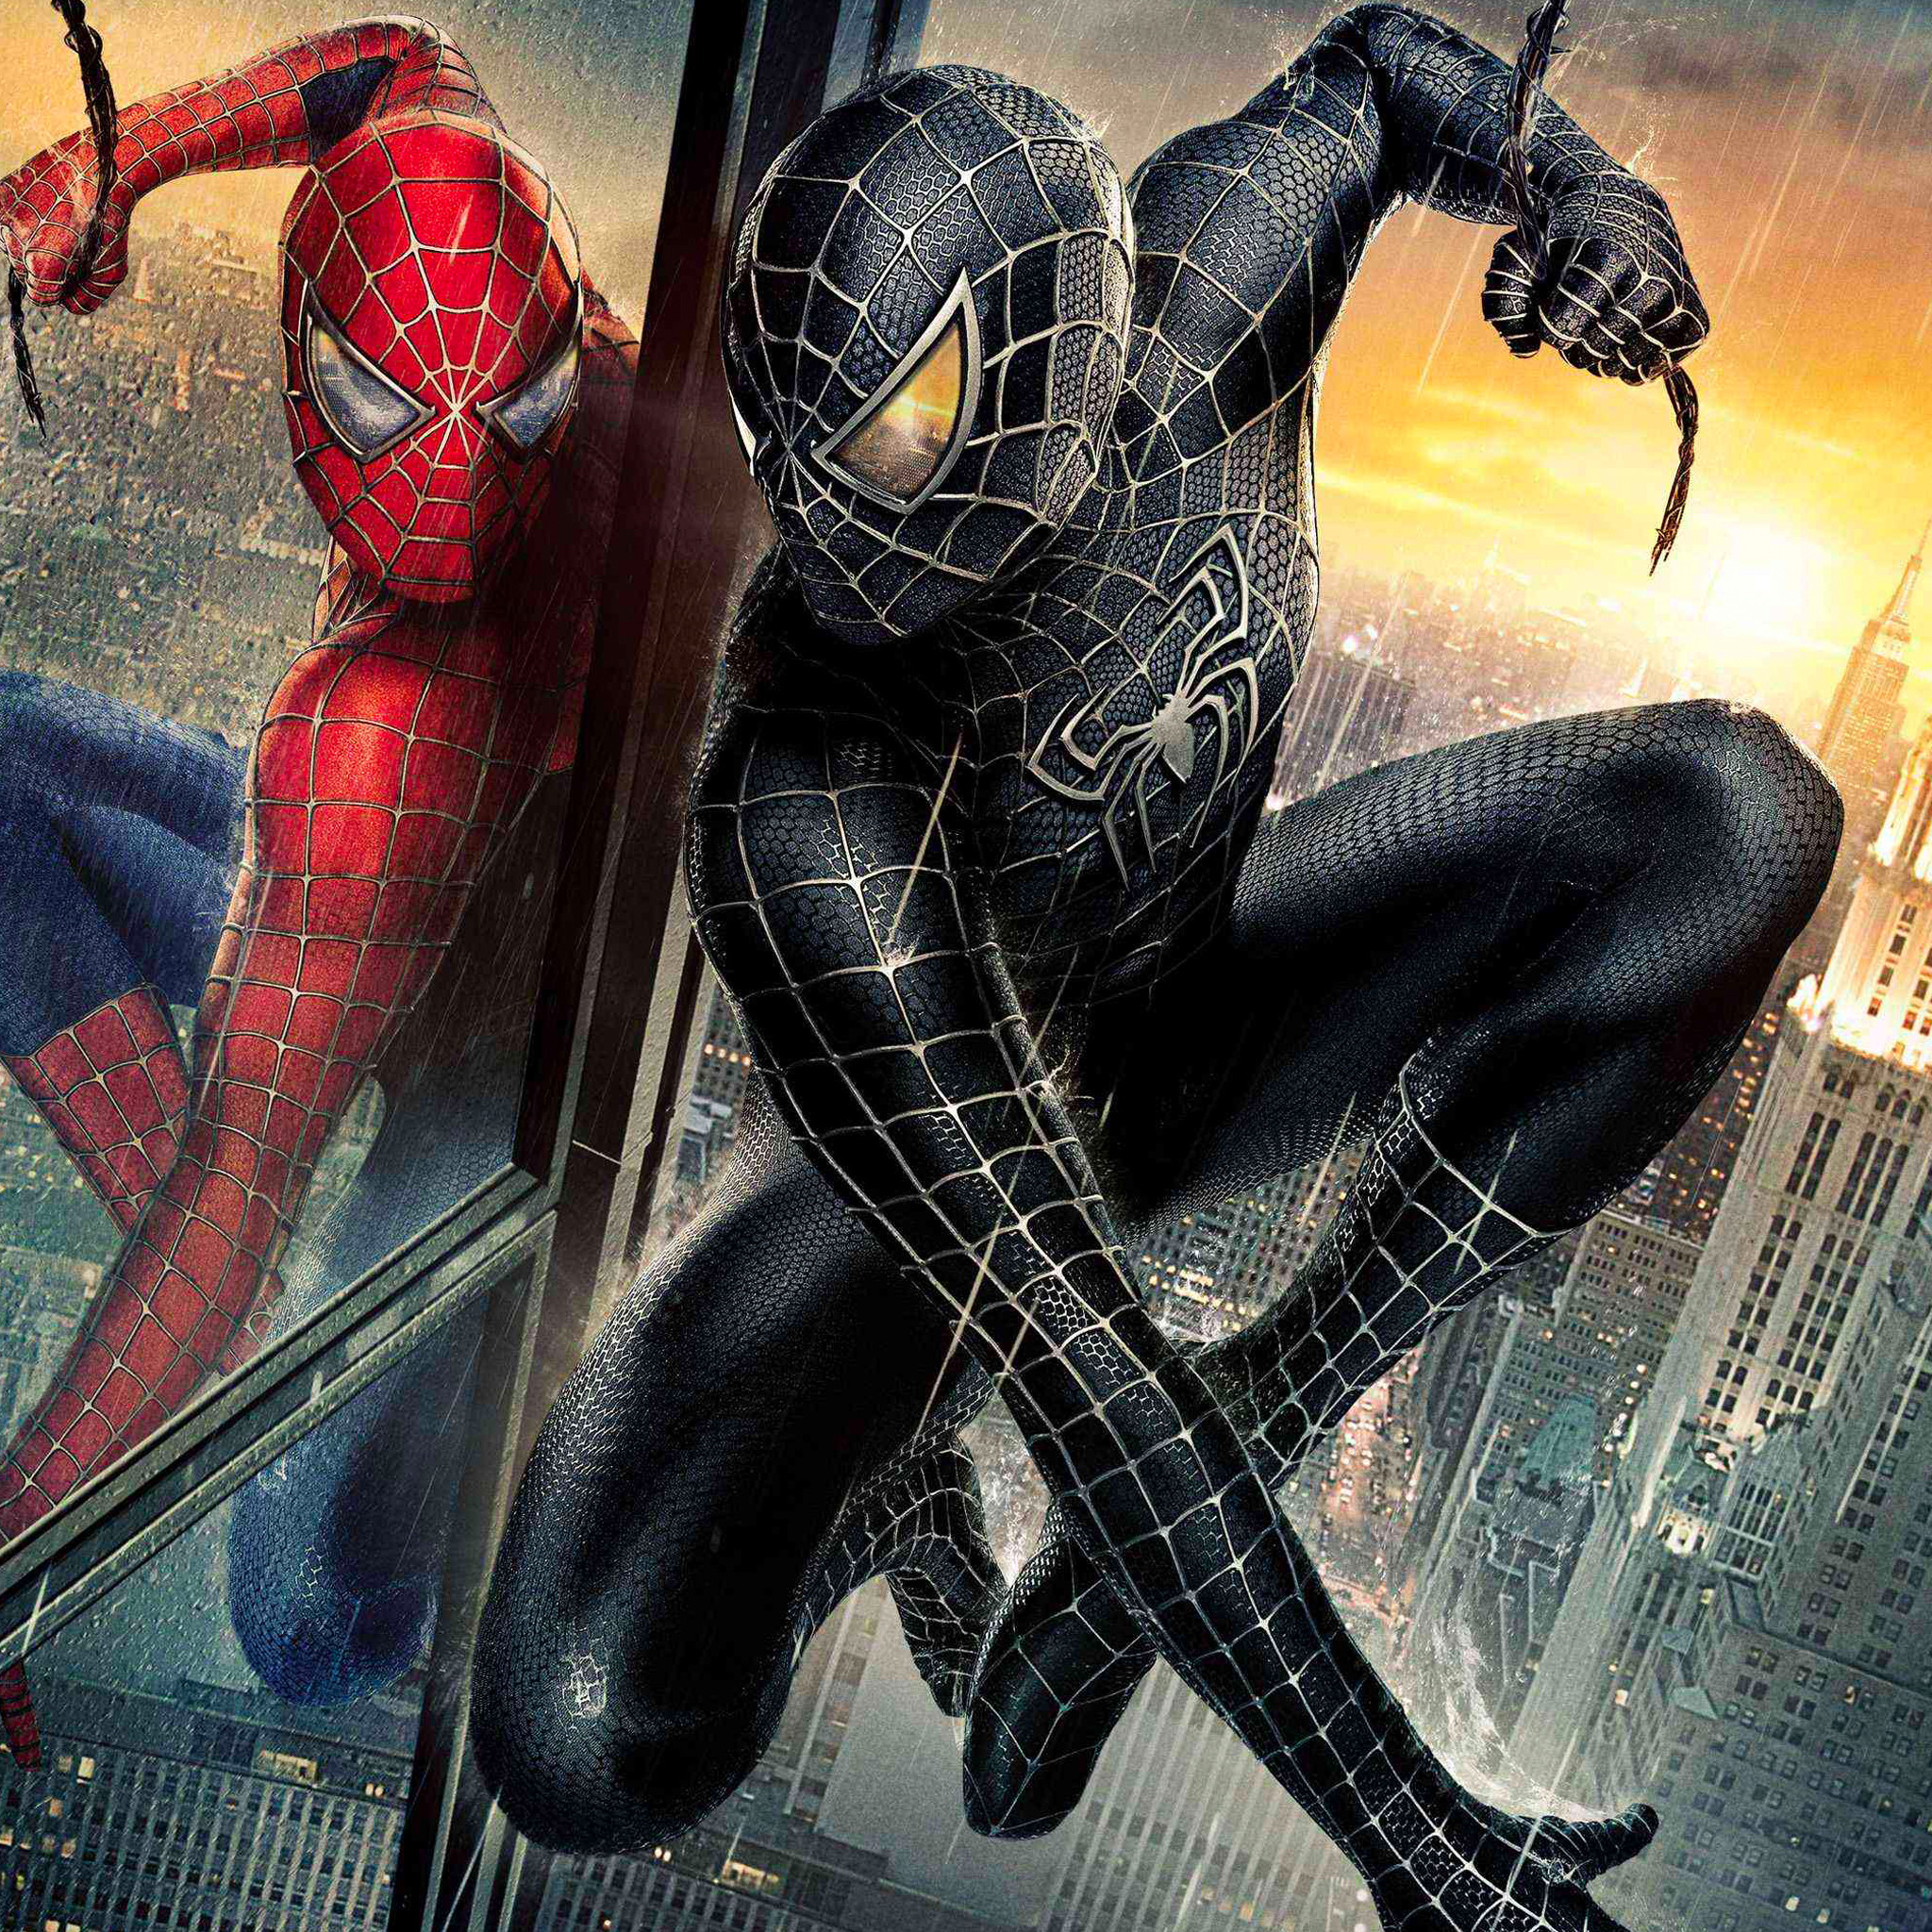 spiderman 3 Mary jane has been captured by venom help spider-man reach her in time by swinging across the building tops before time runs out.